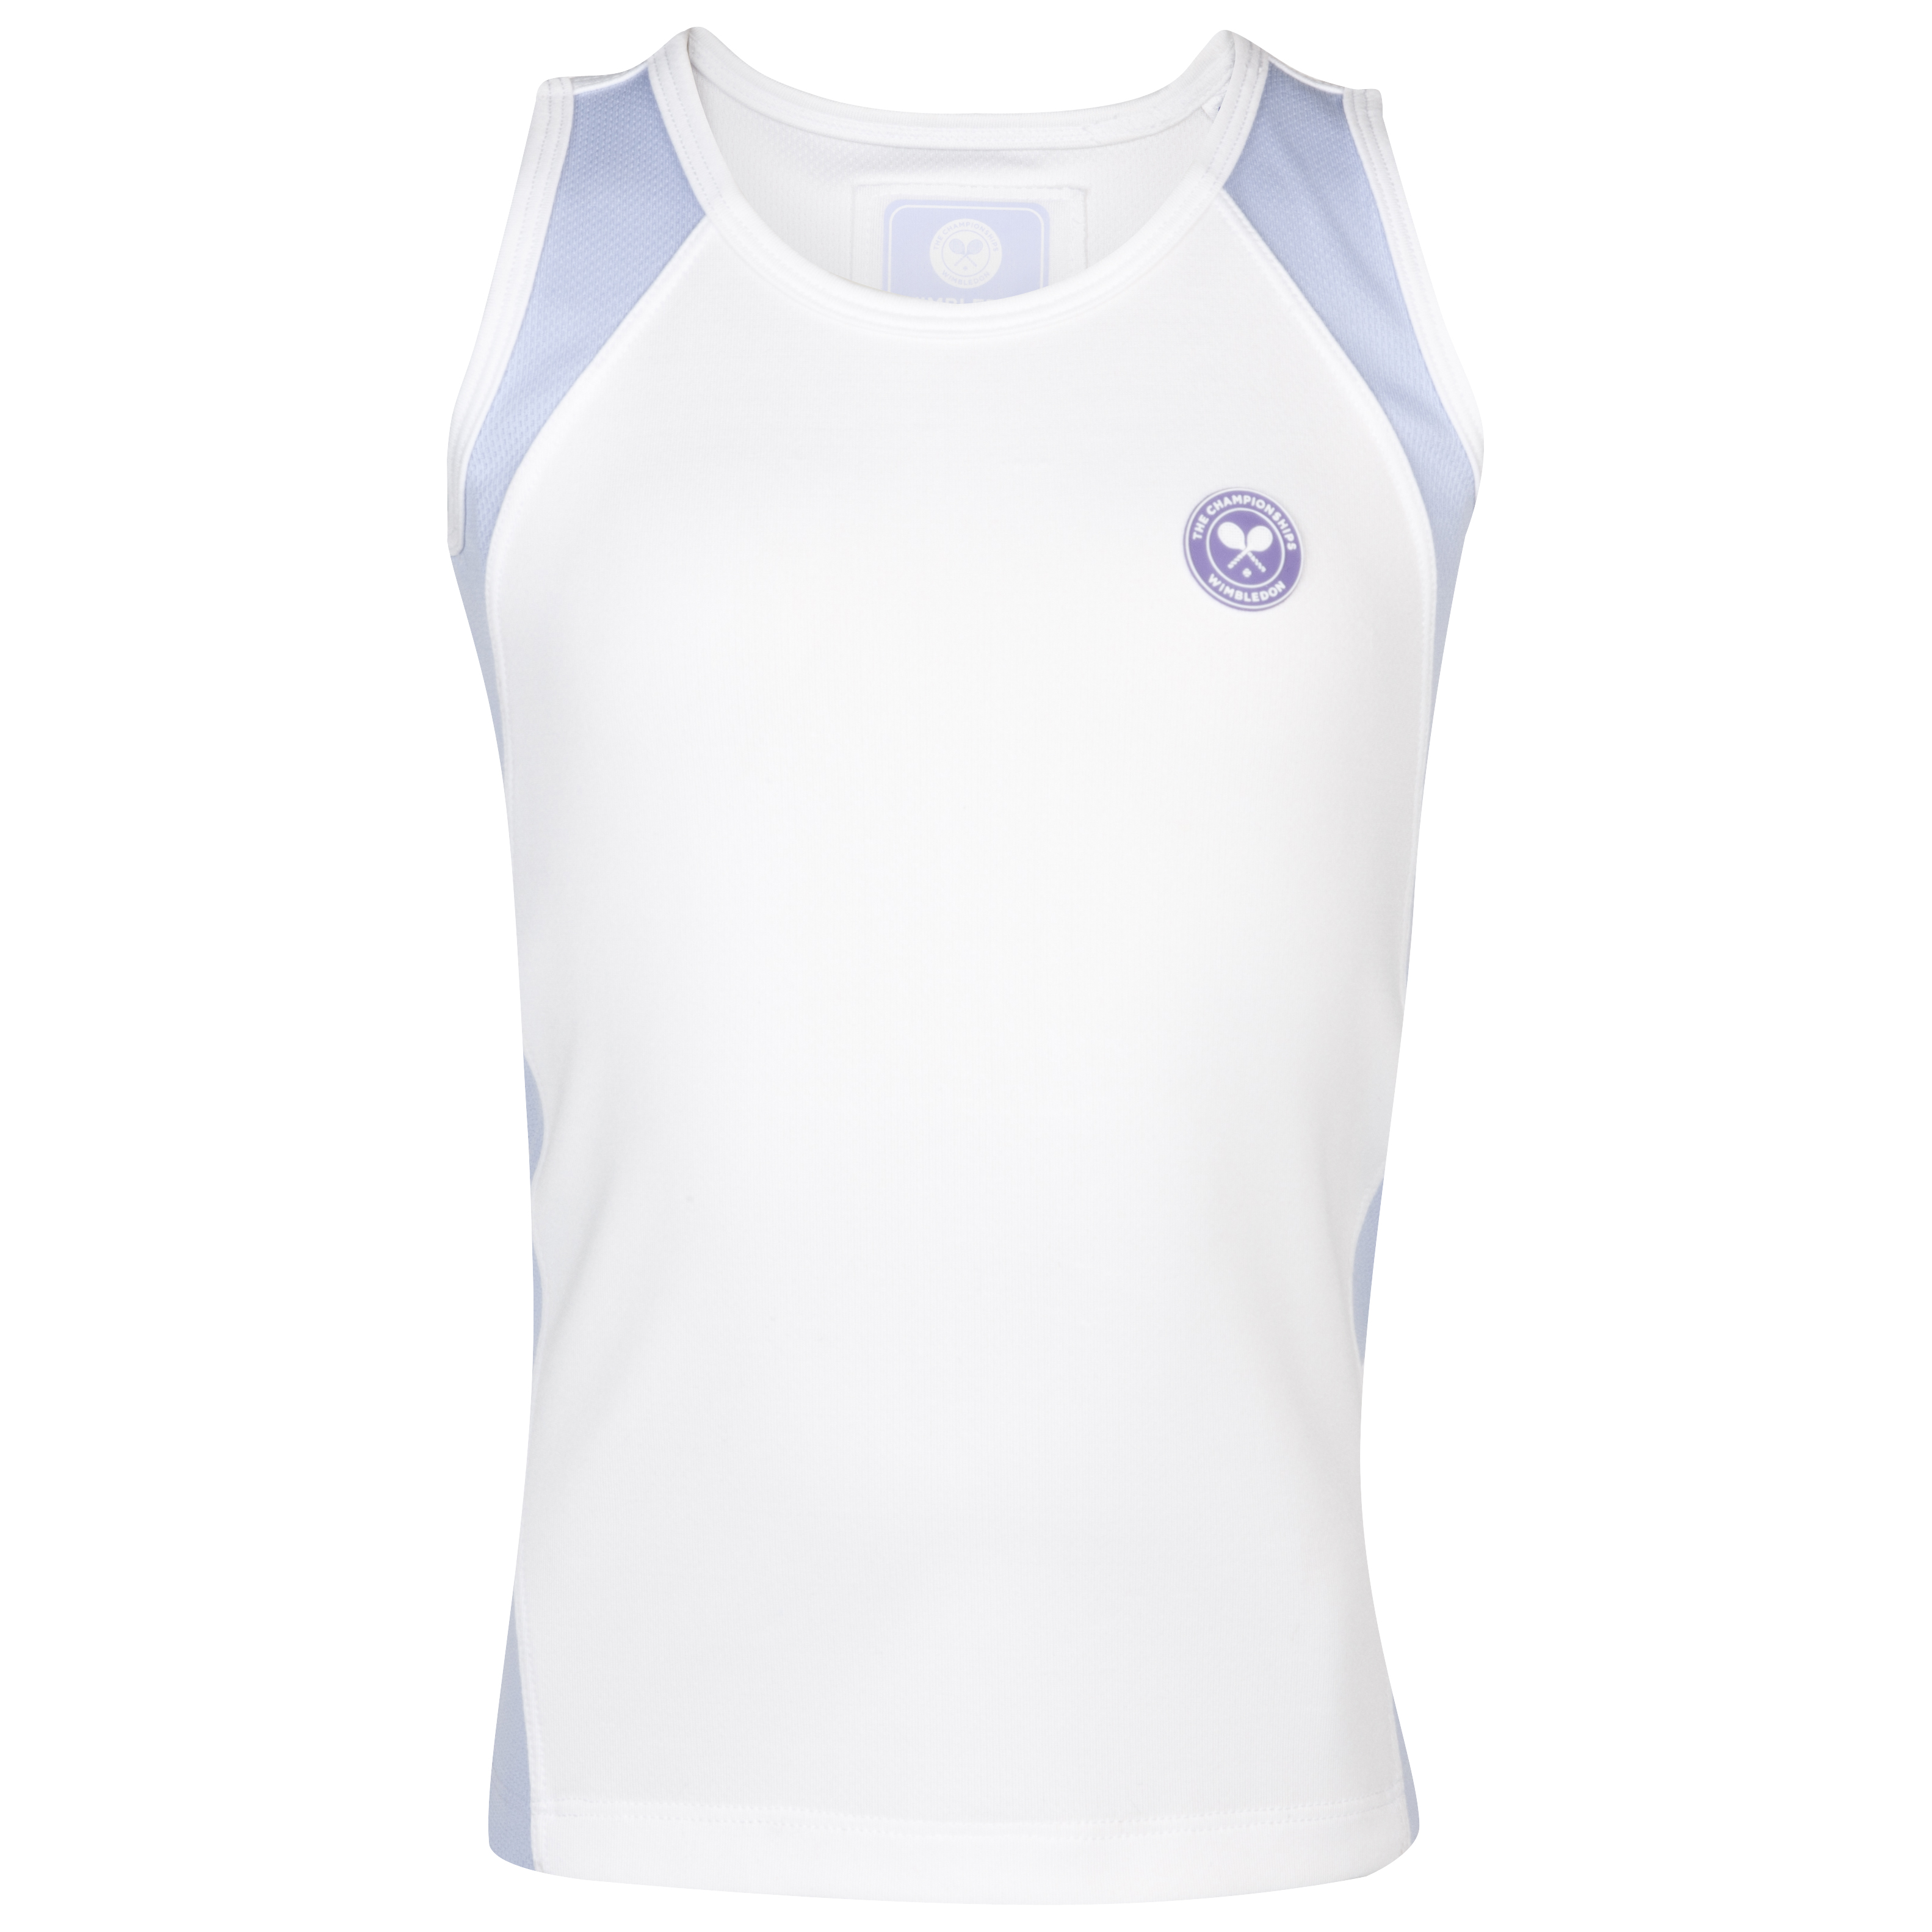 Wimbledon Sleeveless Top - Girls - White